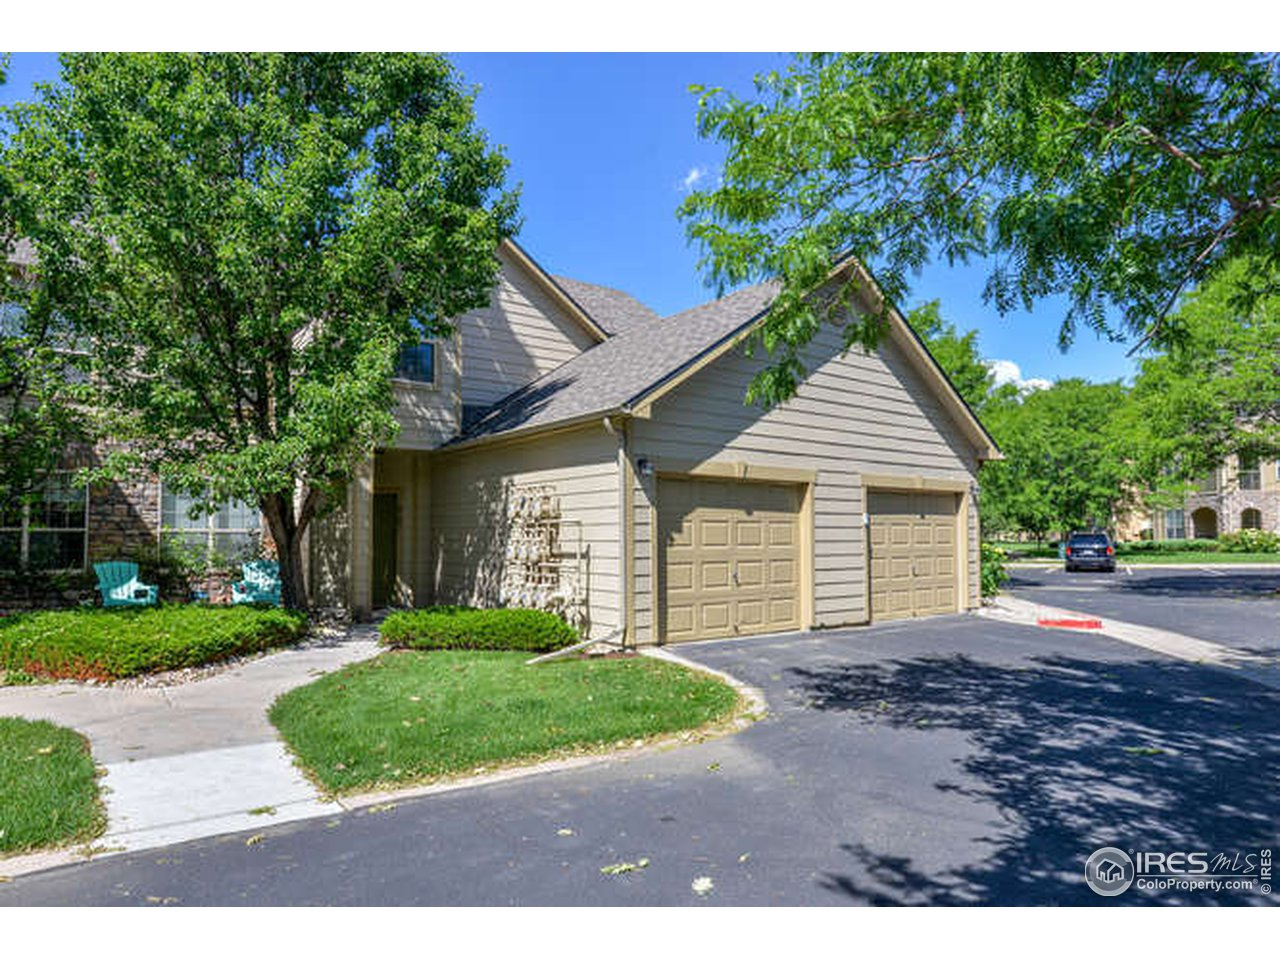 5620 Fossil Creek Pkwy 8101, Fort Collins CO 80525